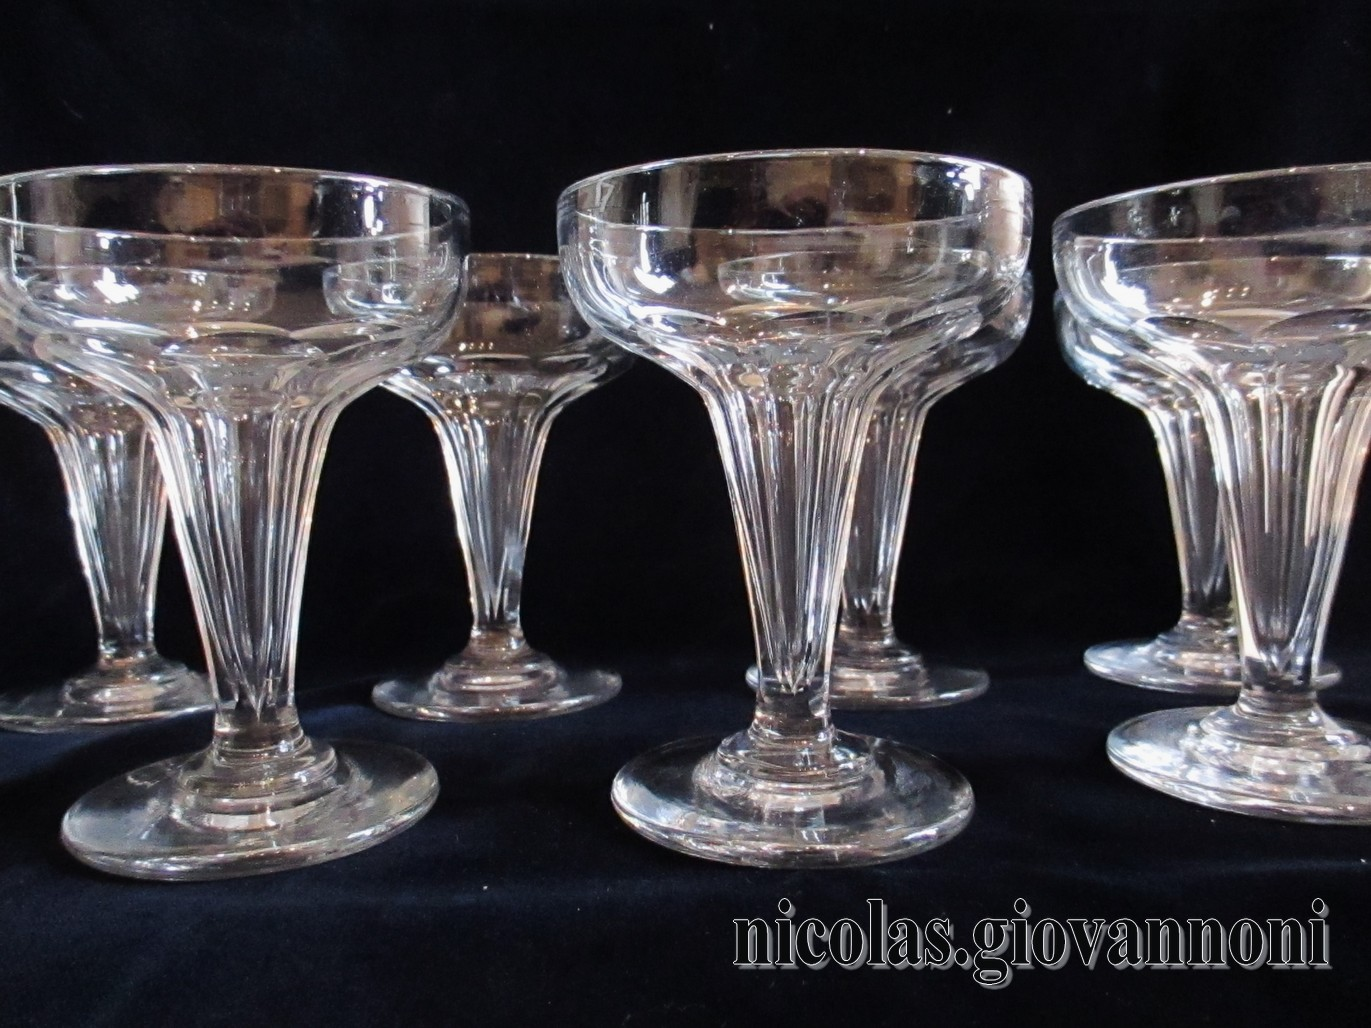 8 coupes  Champagne  Coupes champenoises  BACCARAT  Cristal  Catalogue  Cristal de